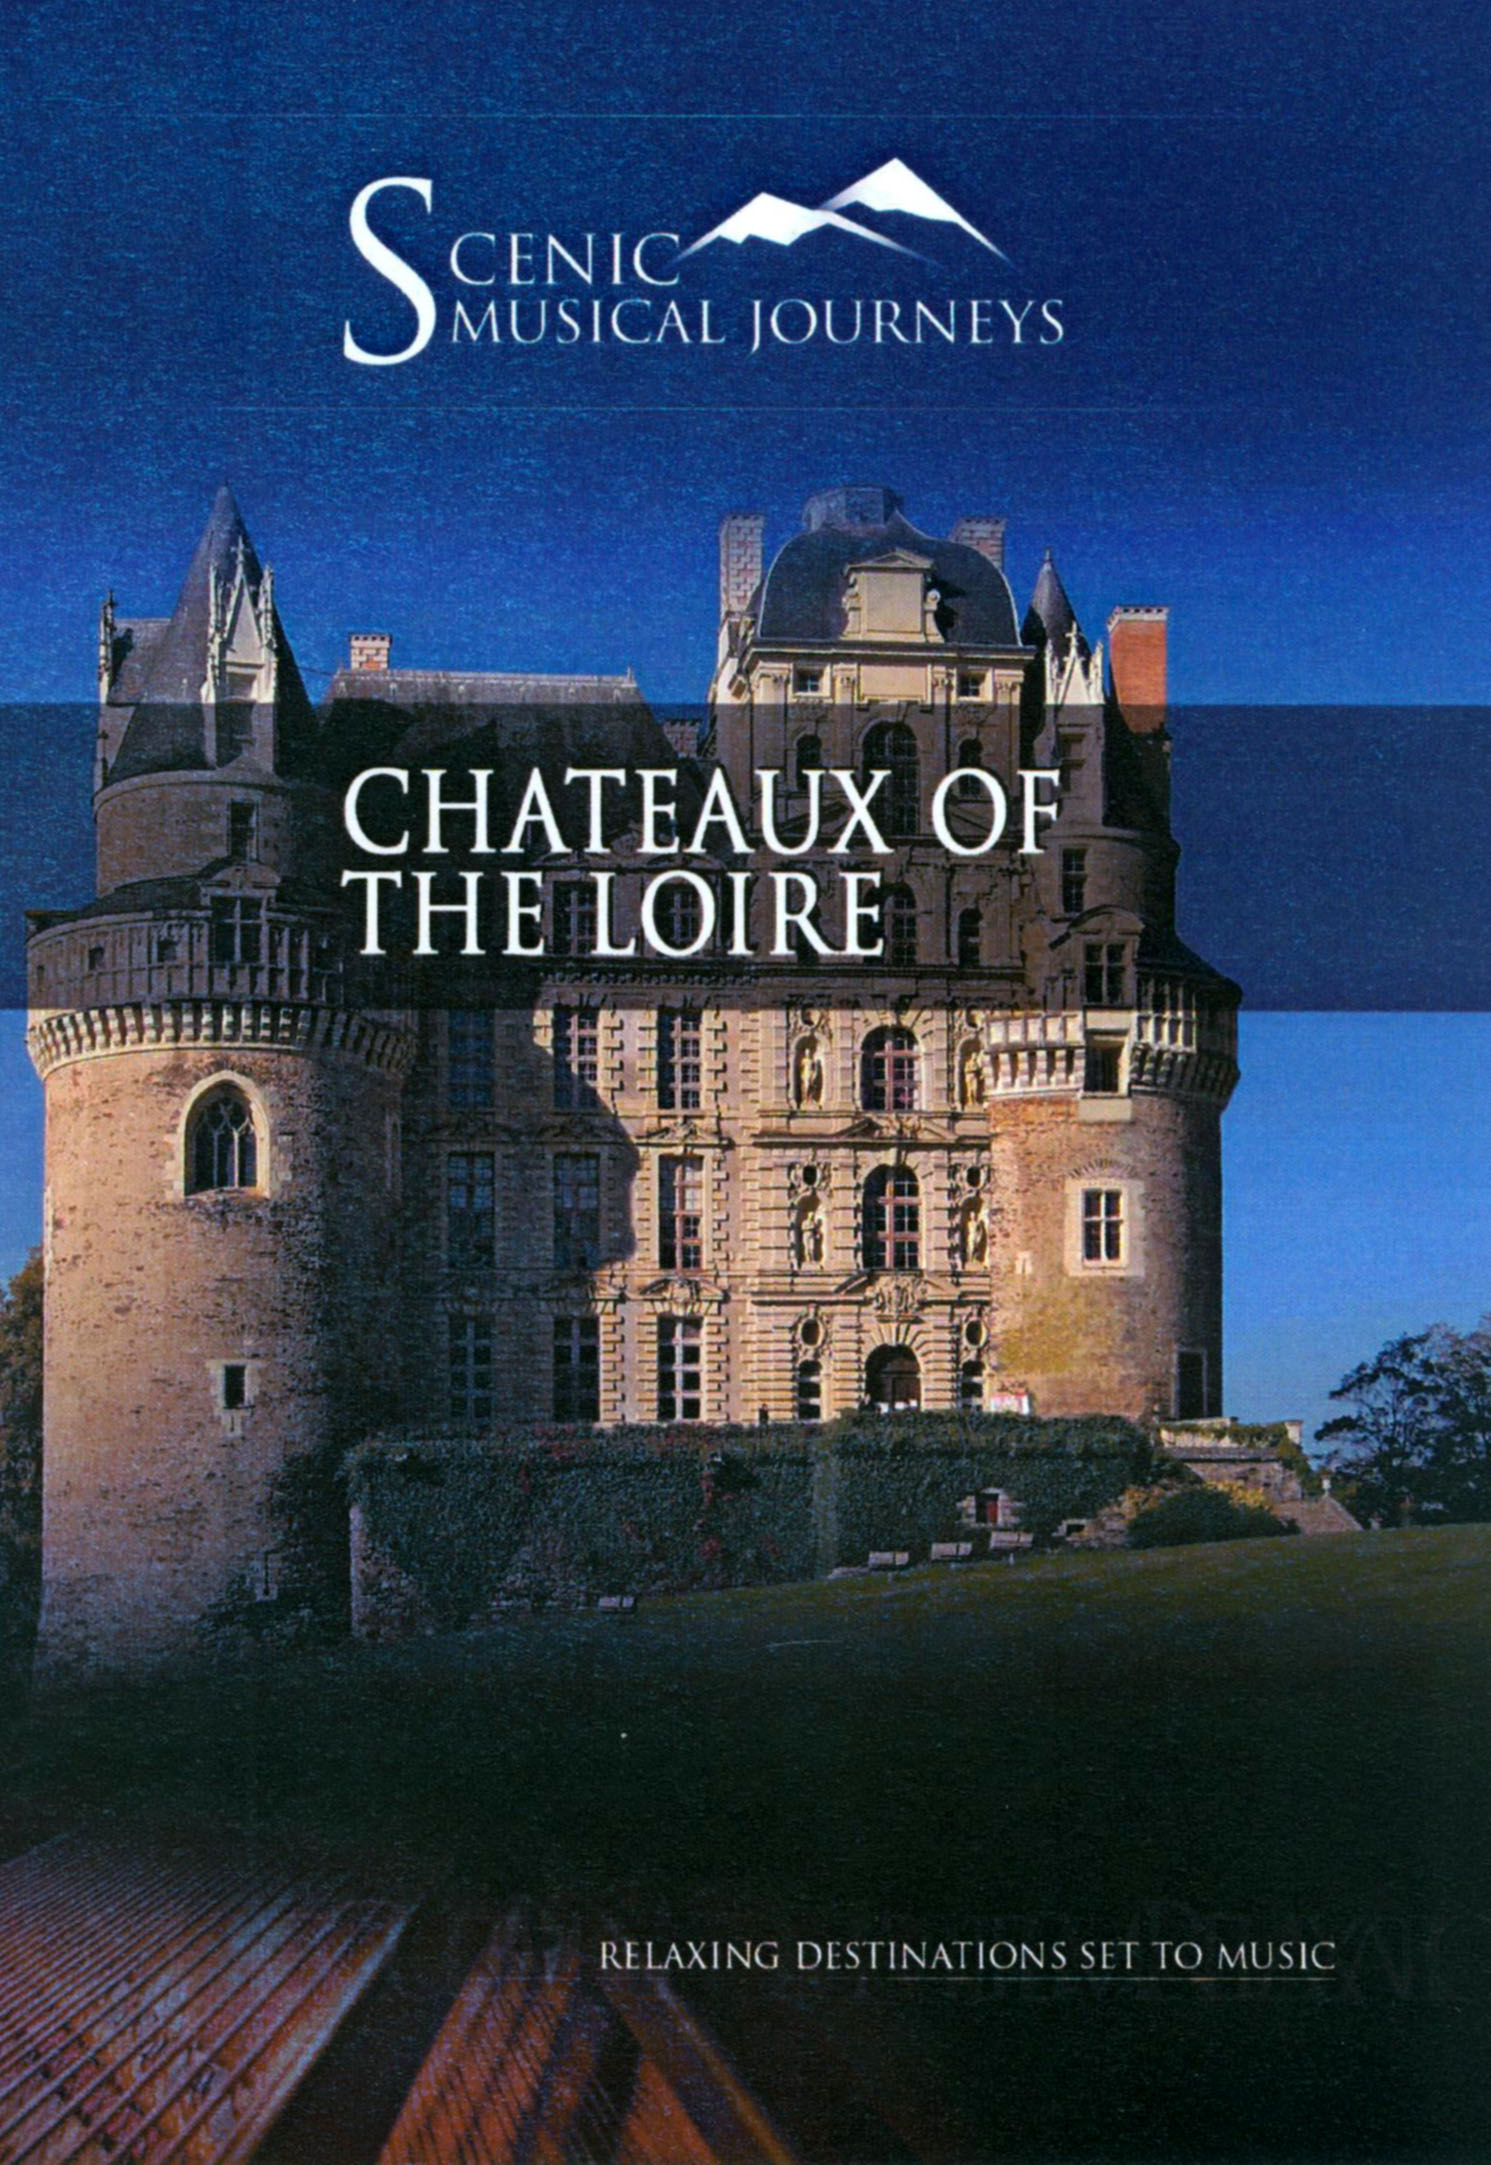 Scenic Musical Journeys: Chateaux of the Loire